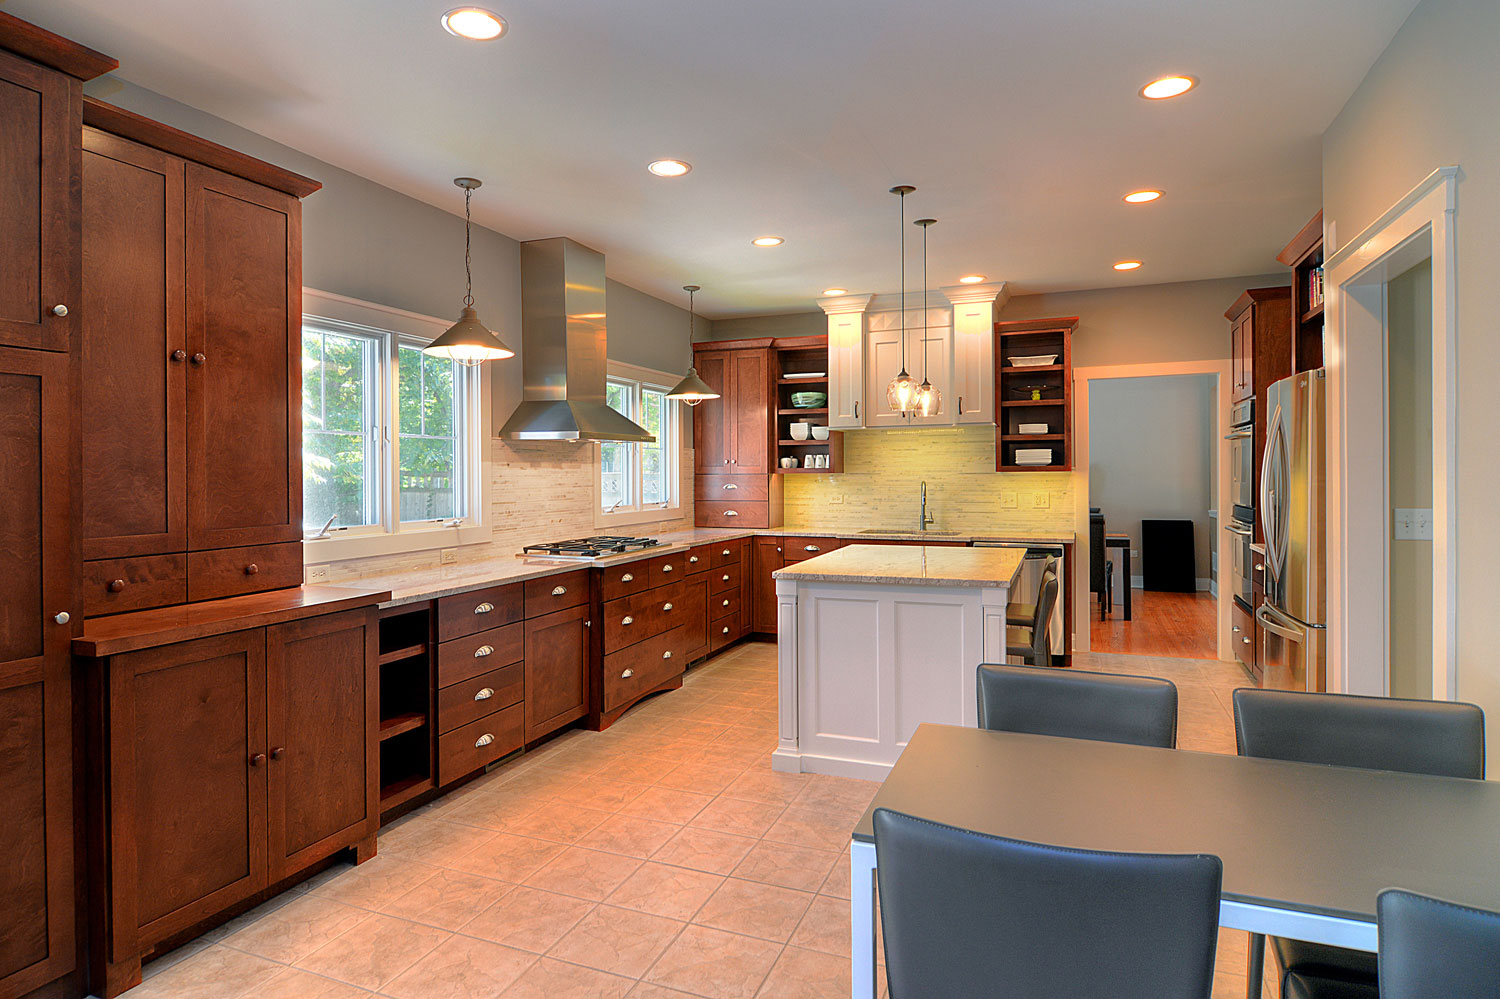 Brian Mary S Kitchen Remodel Pictures Home Remodeling Contractors Sebring Design Build